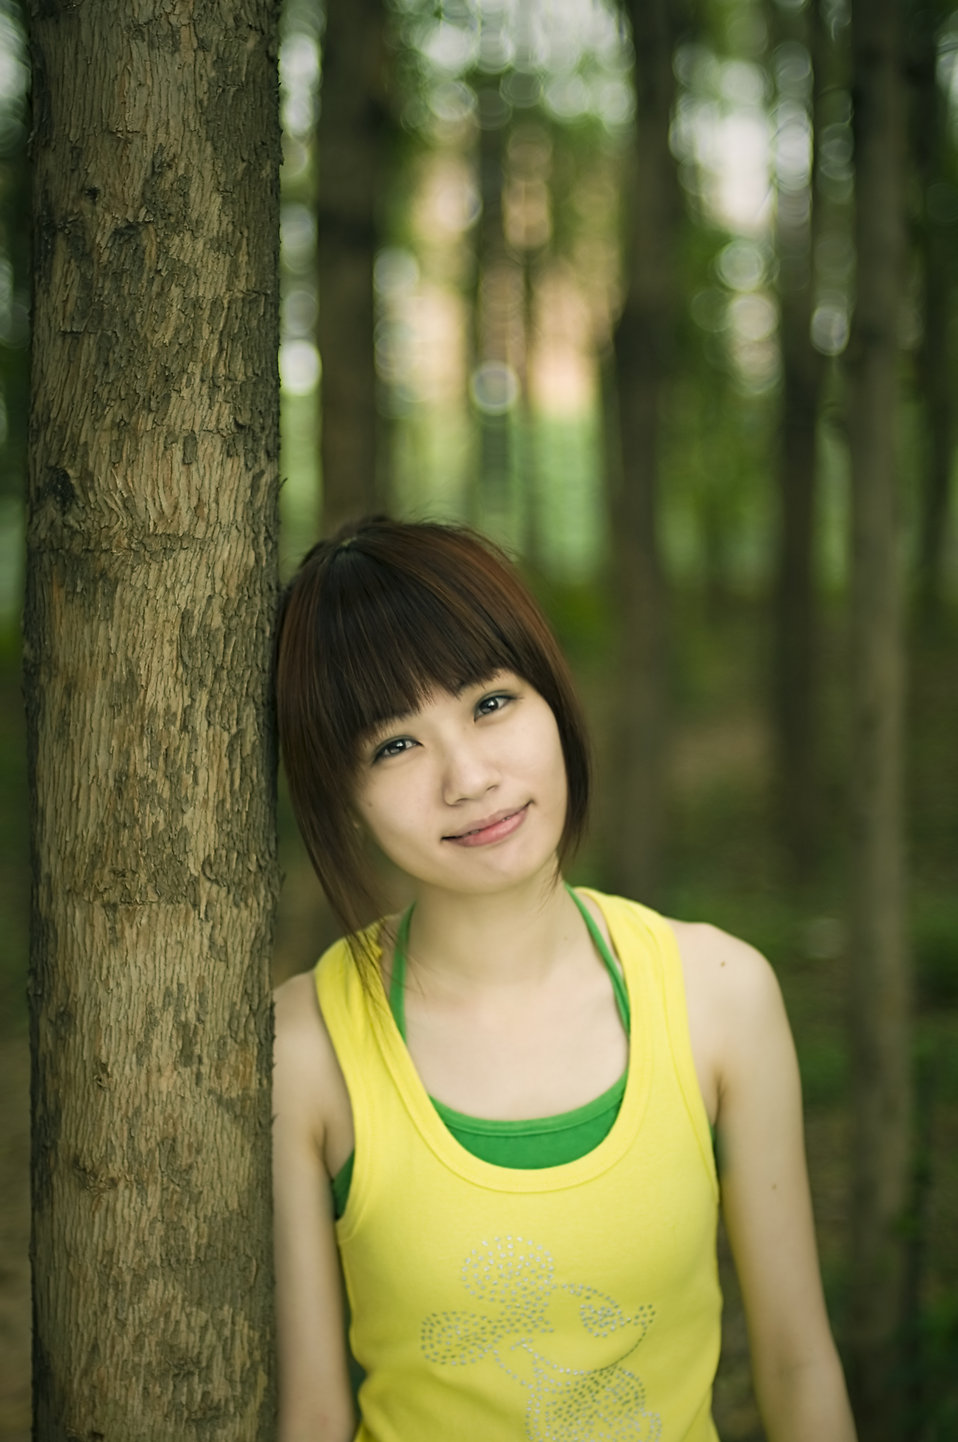 A beautiful Chinese girl posing against a tree : Free Stock Photo